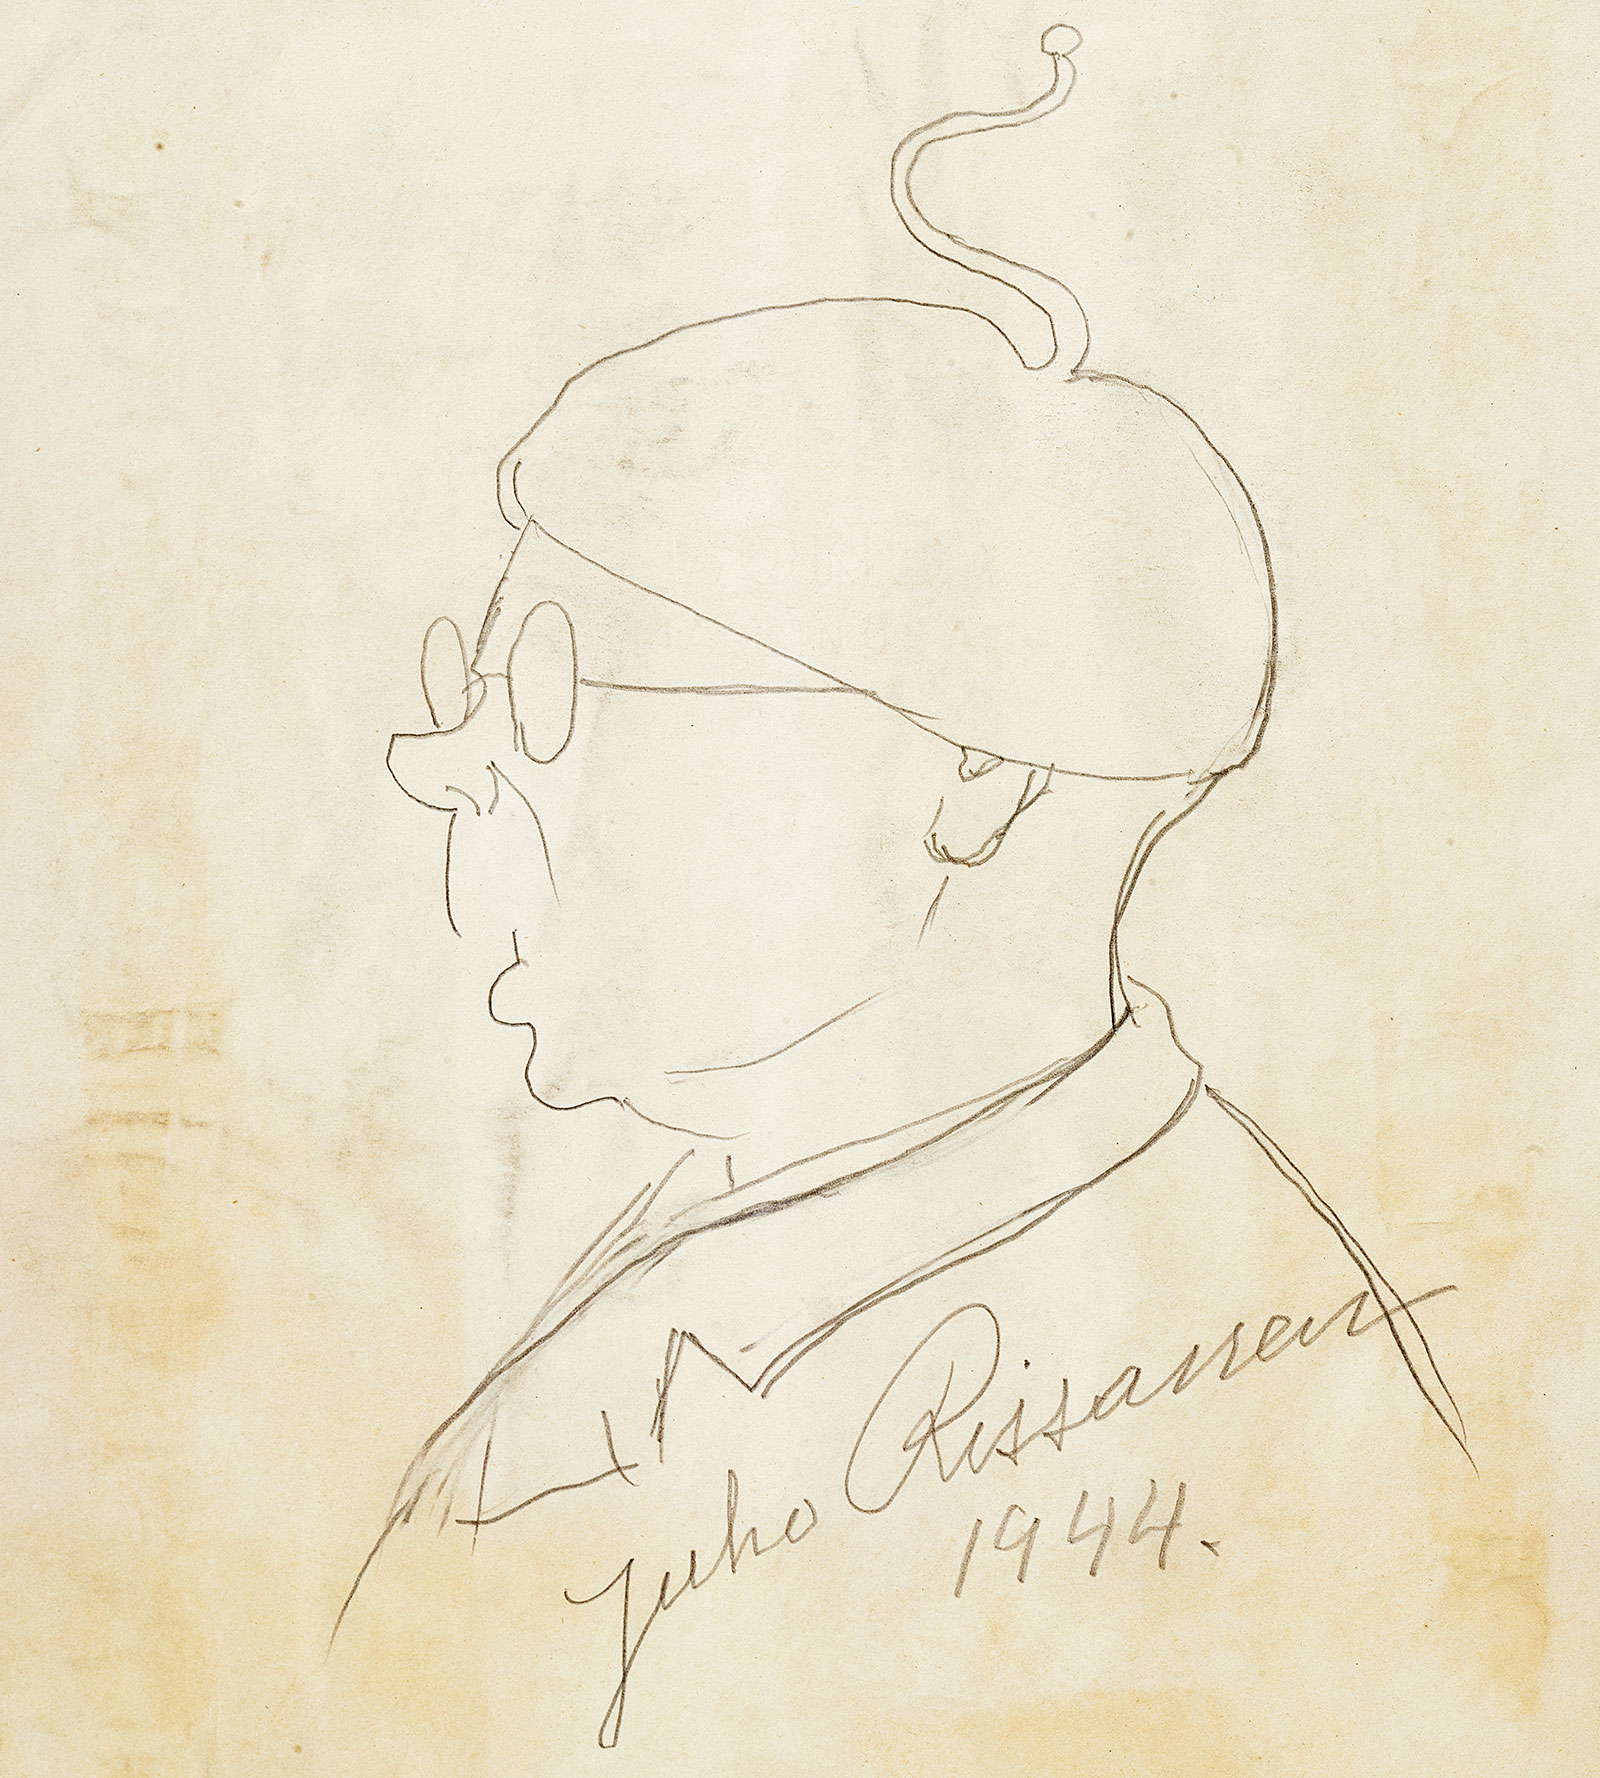 Self-portrait of Juho Rissanen